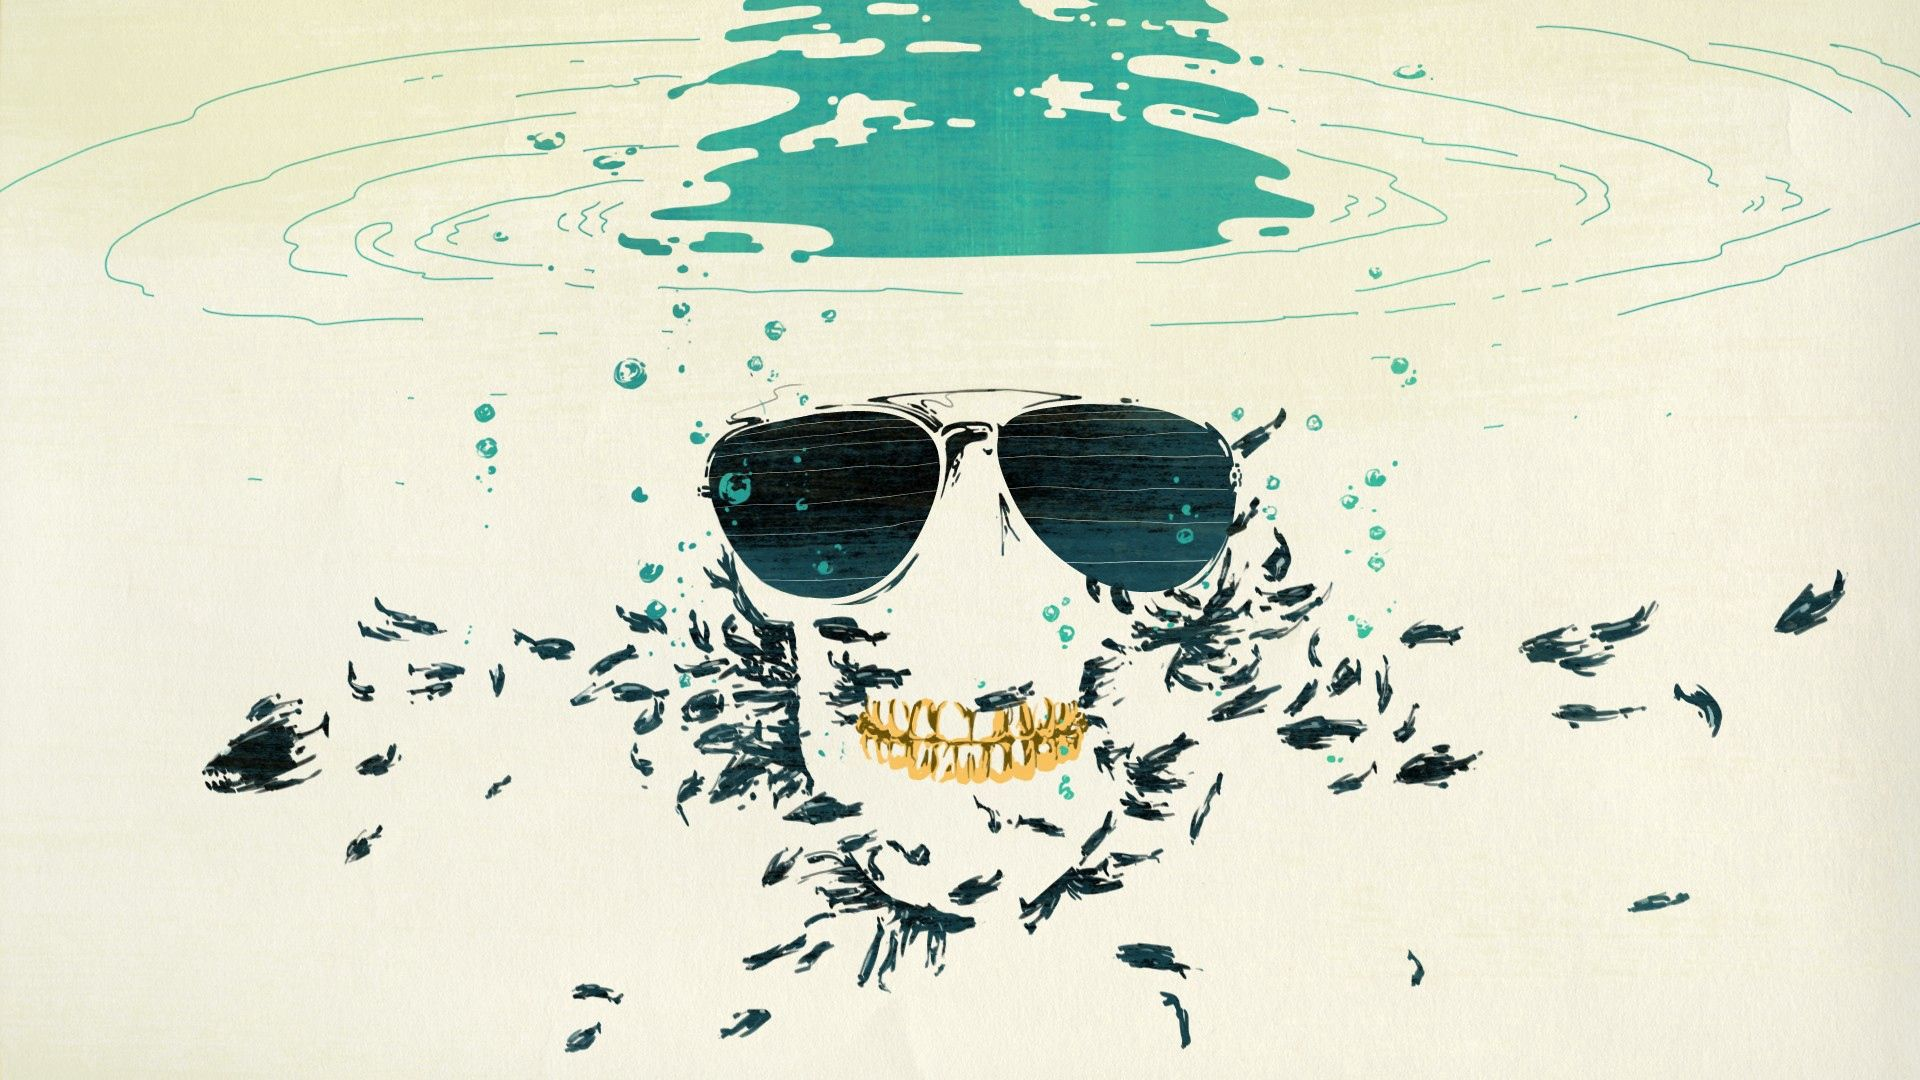 103180 download wallpaper Art, Glasses, Spectacles, Skull, Picture, Drawing screensavers and pictures for free